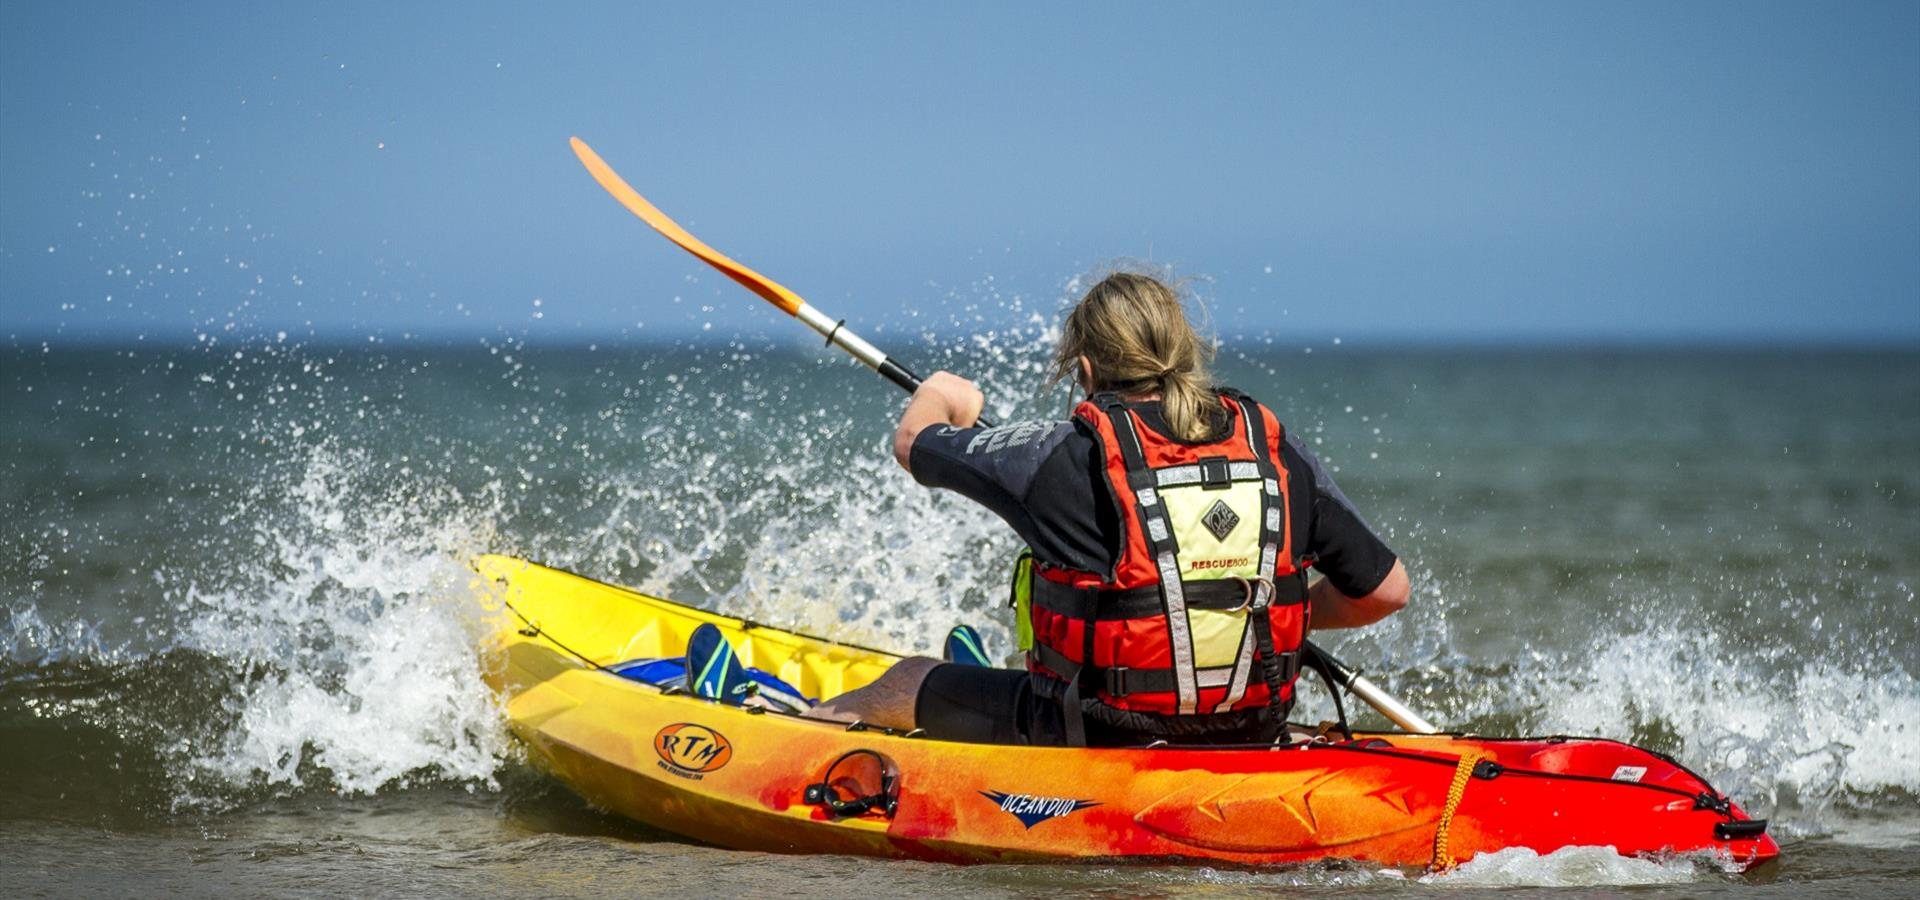 An image of Kayaking by Chris Lazenby